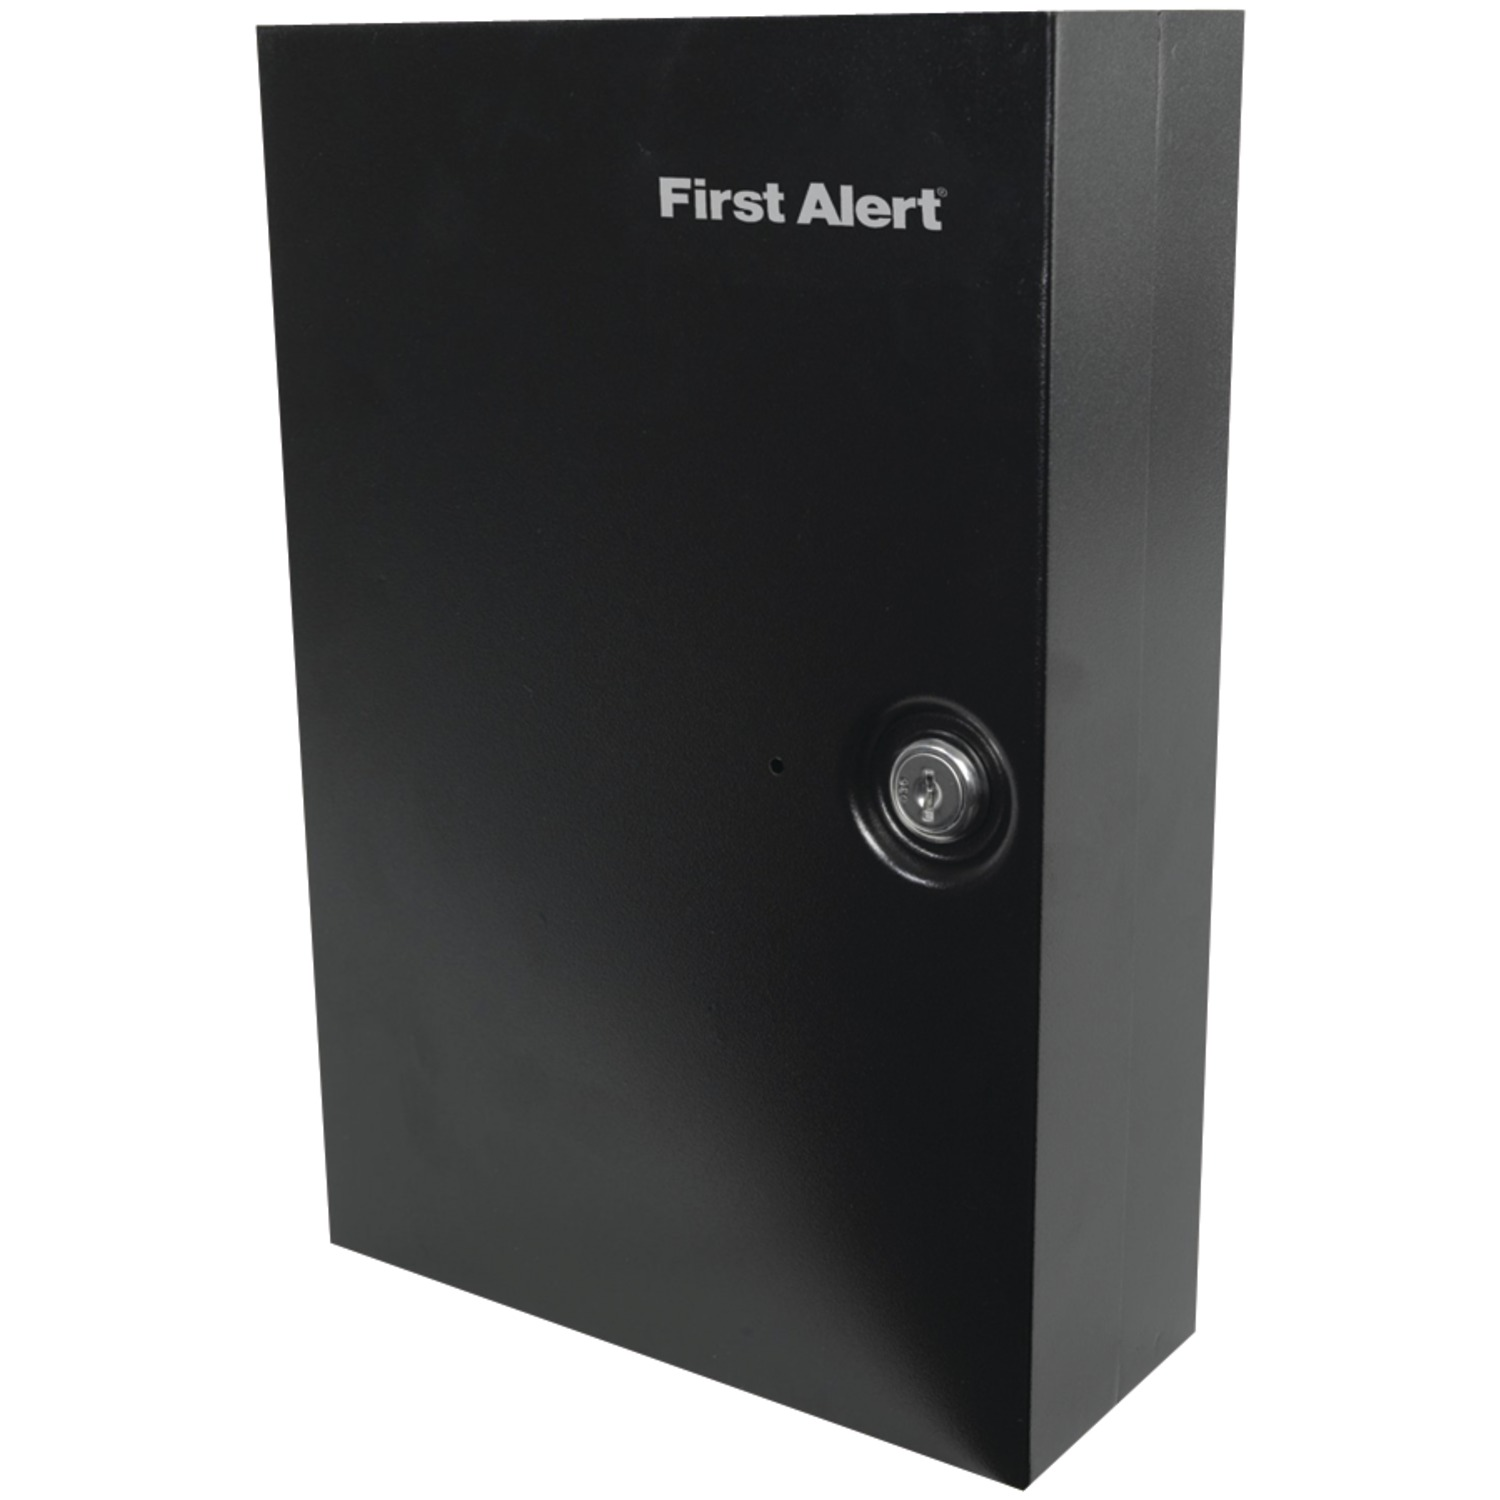 First Alert Steel Wall Mount Key Cabinet with Key Lock, 3060F by First Alert